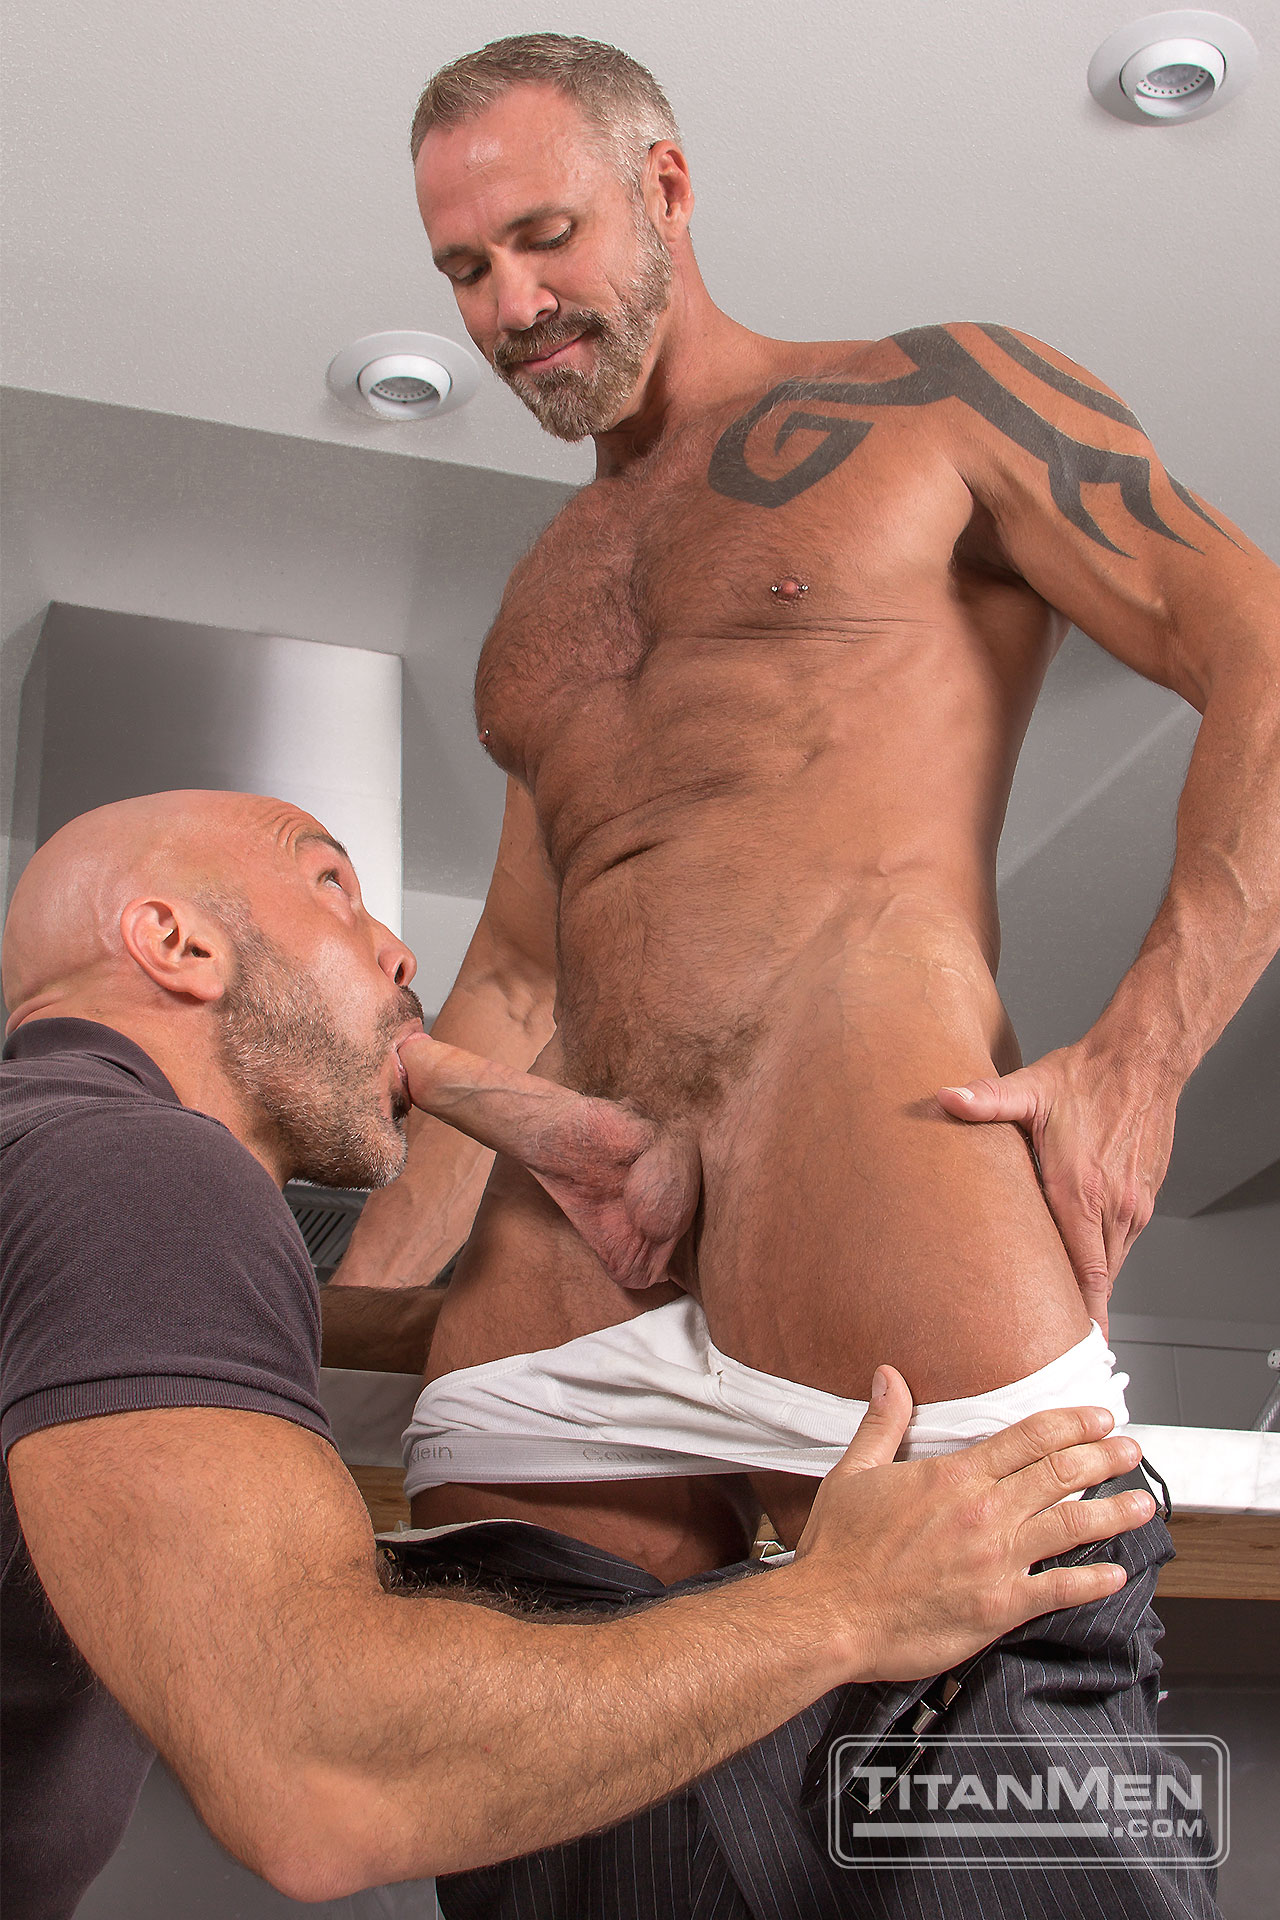 outt_action_JesseDallas_0597